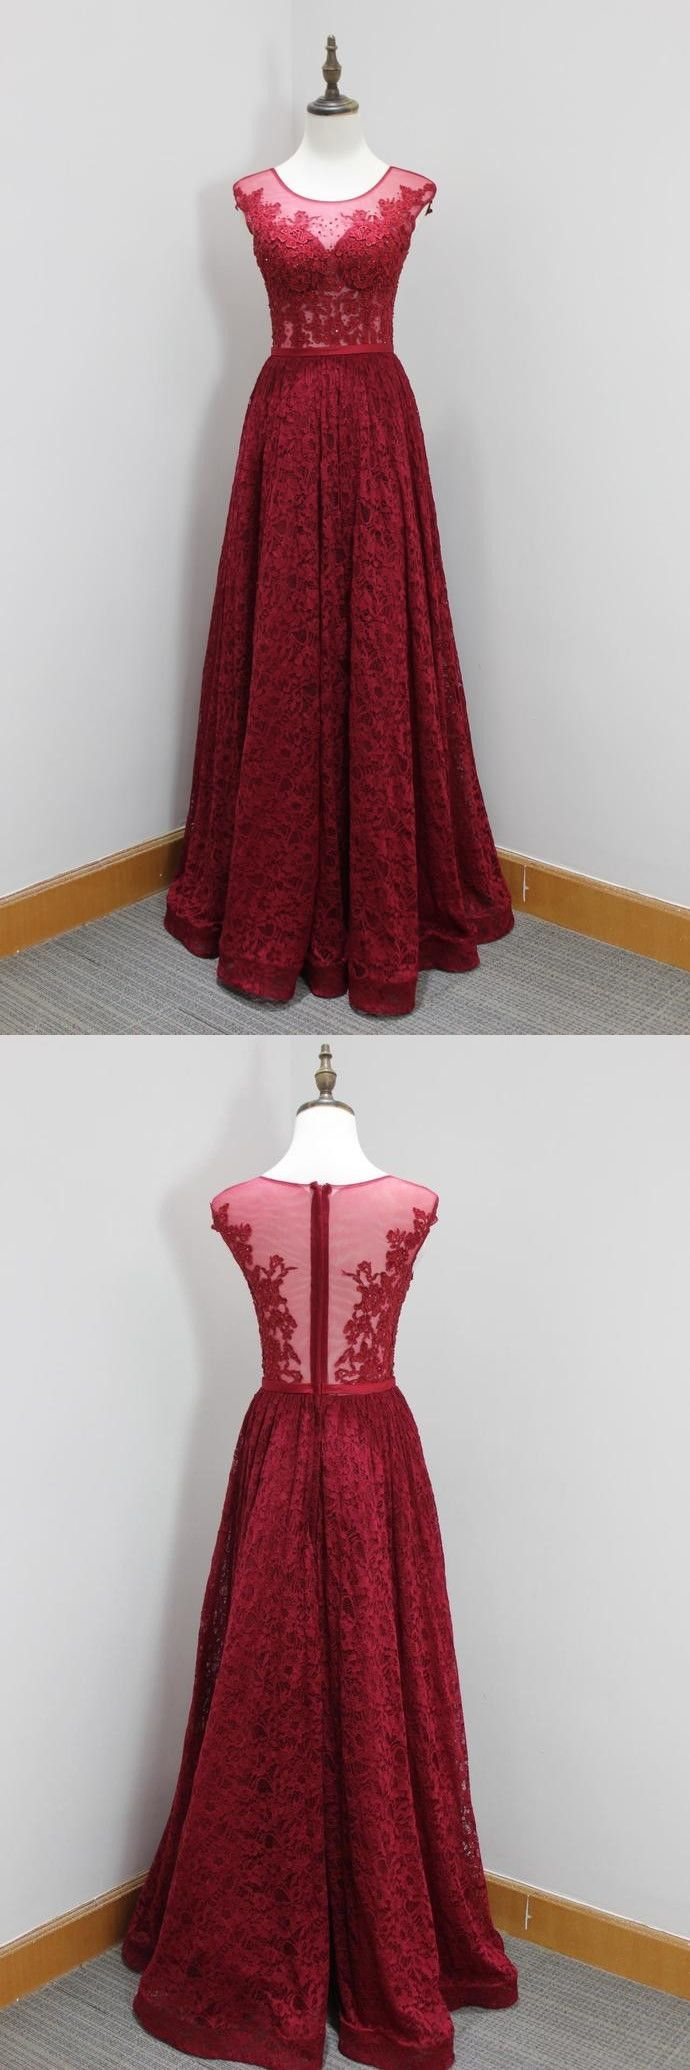 Aline round neck dark red lace prom dress with appliques beading in